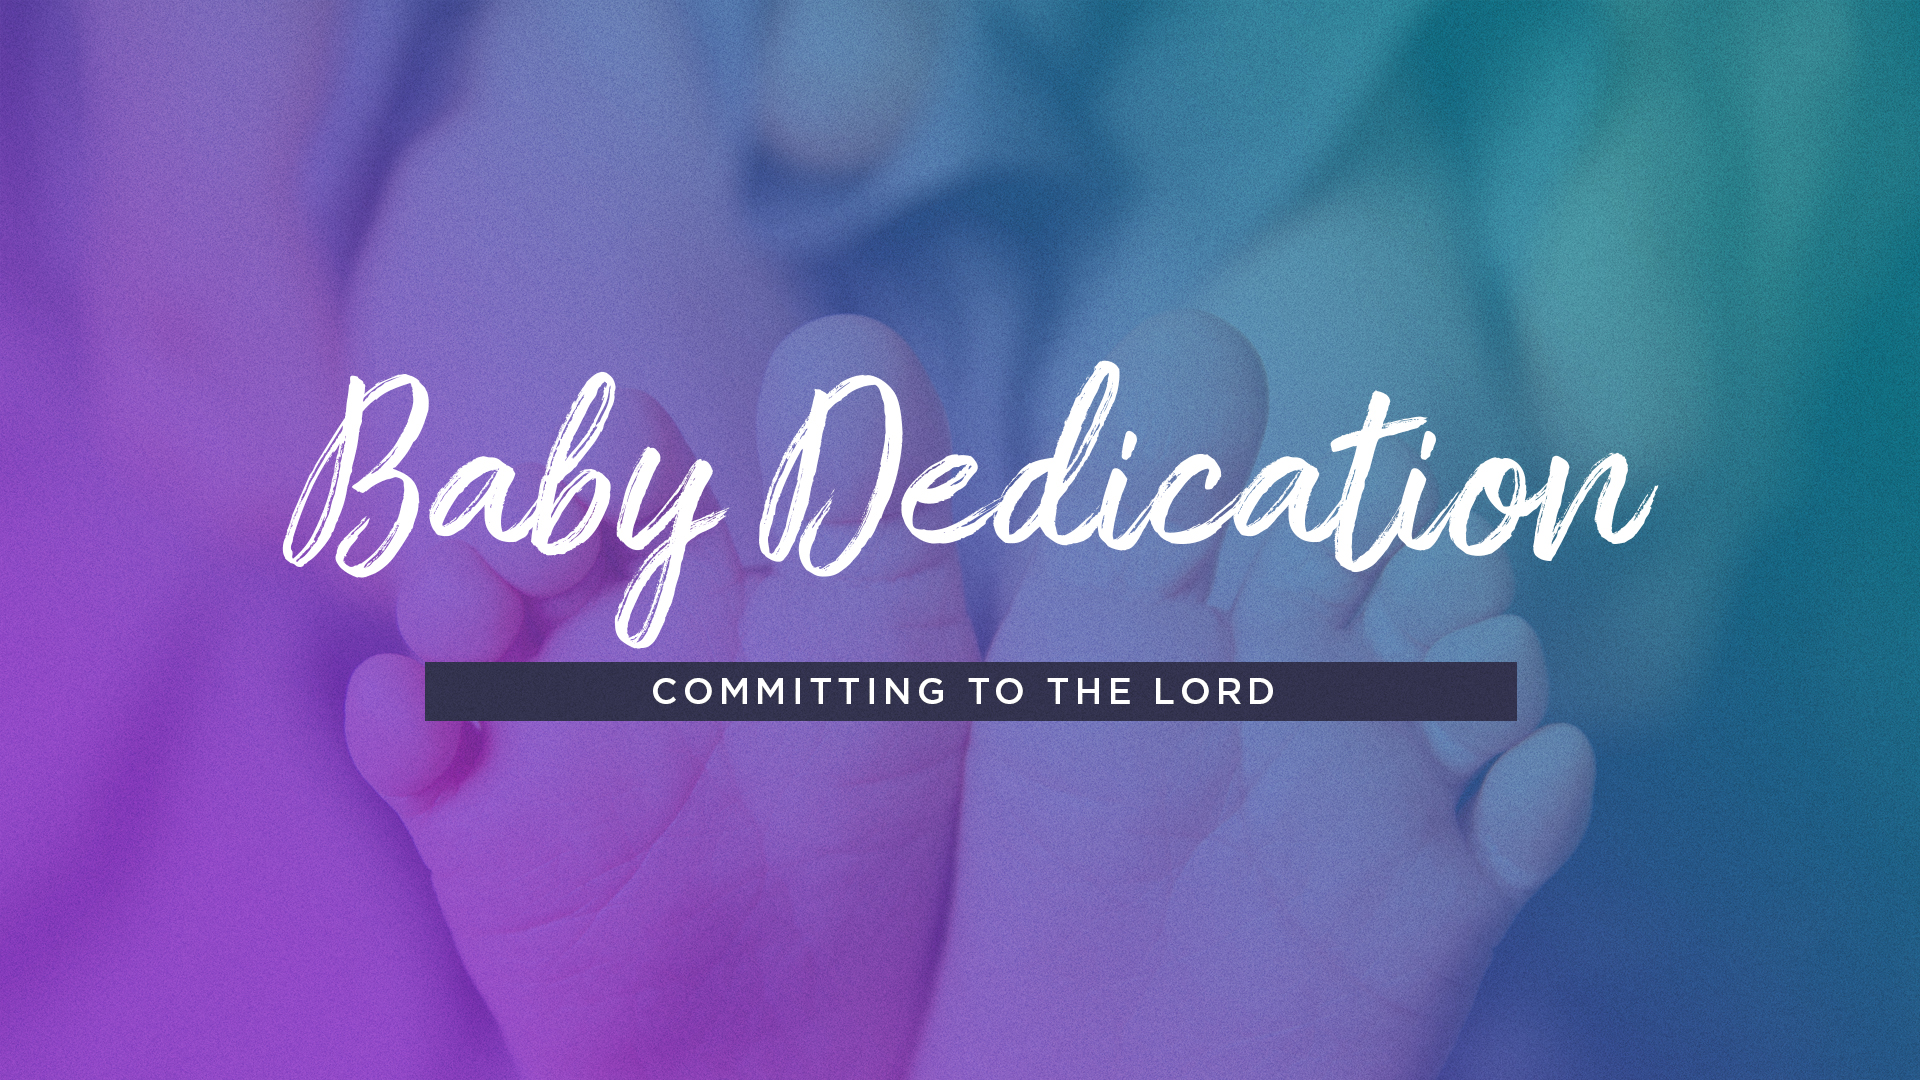 Baby and Child Dedication   will be held on  Sunday, July 7th.  If you have a child or baby to dedicate to the Lord, please call and notify the church office.